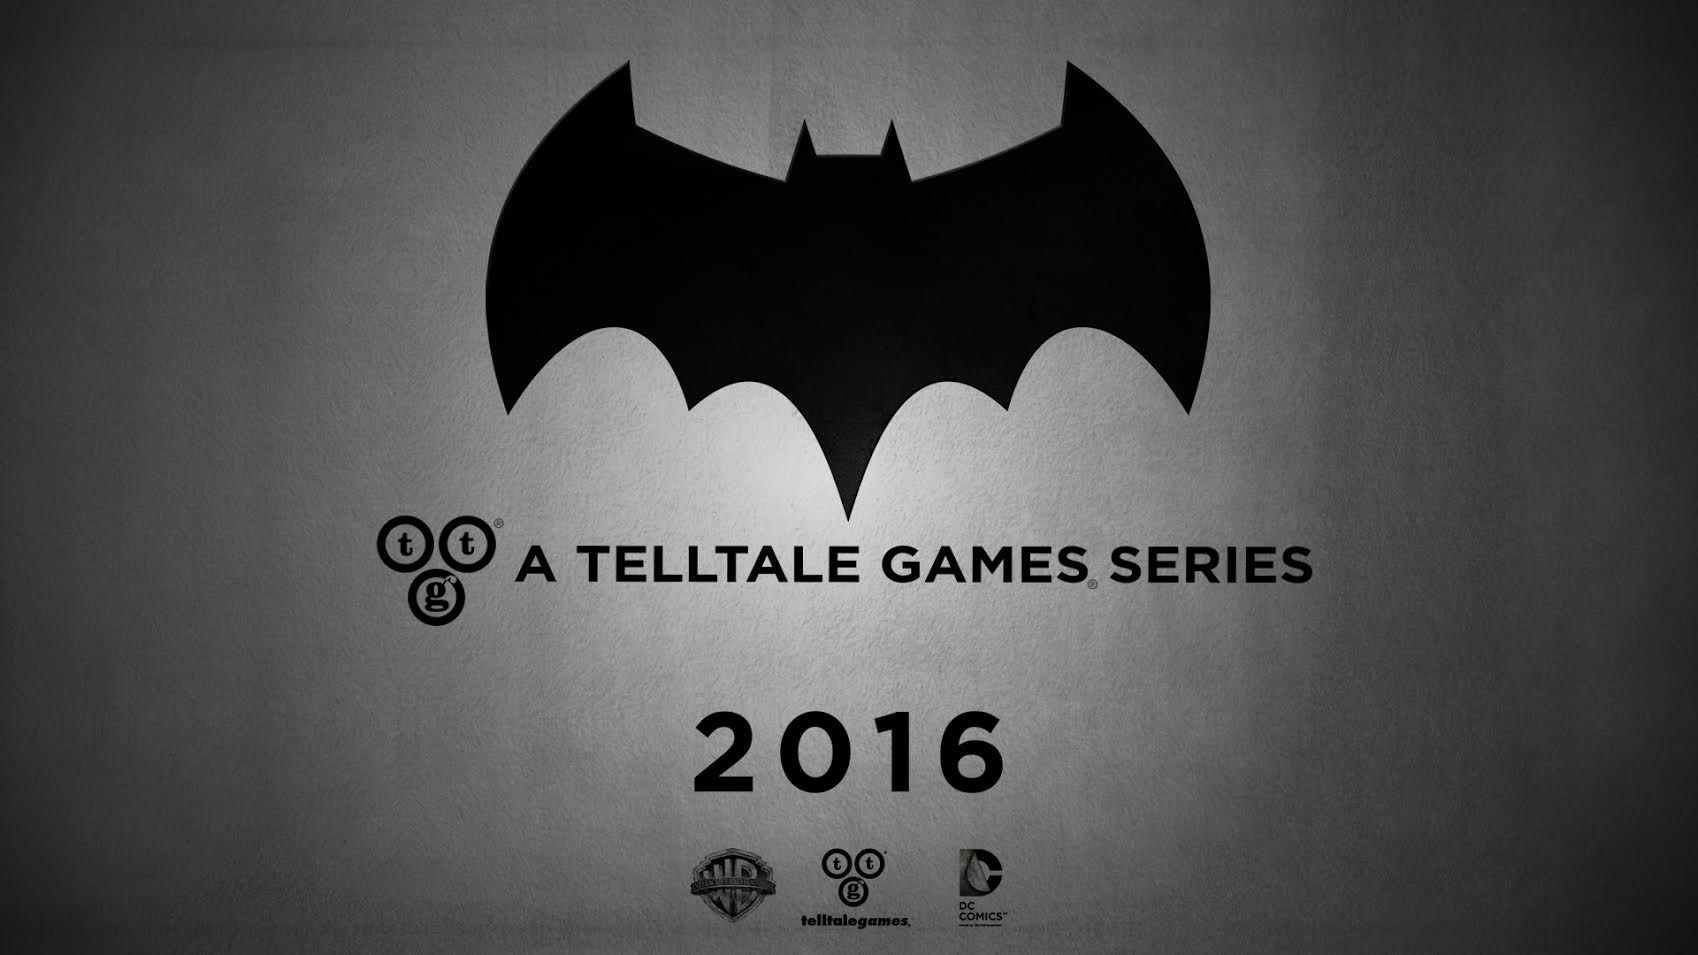 Telltale is working on an episodic Batman game series next